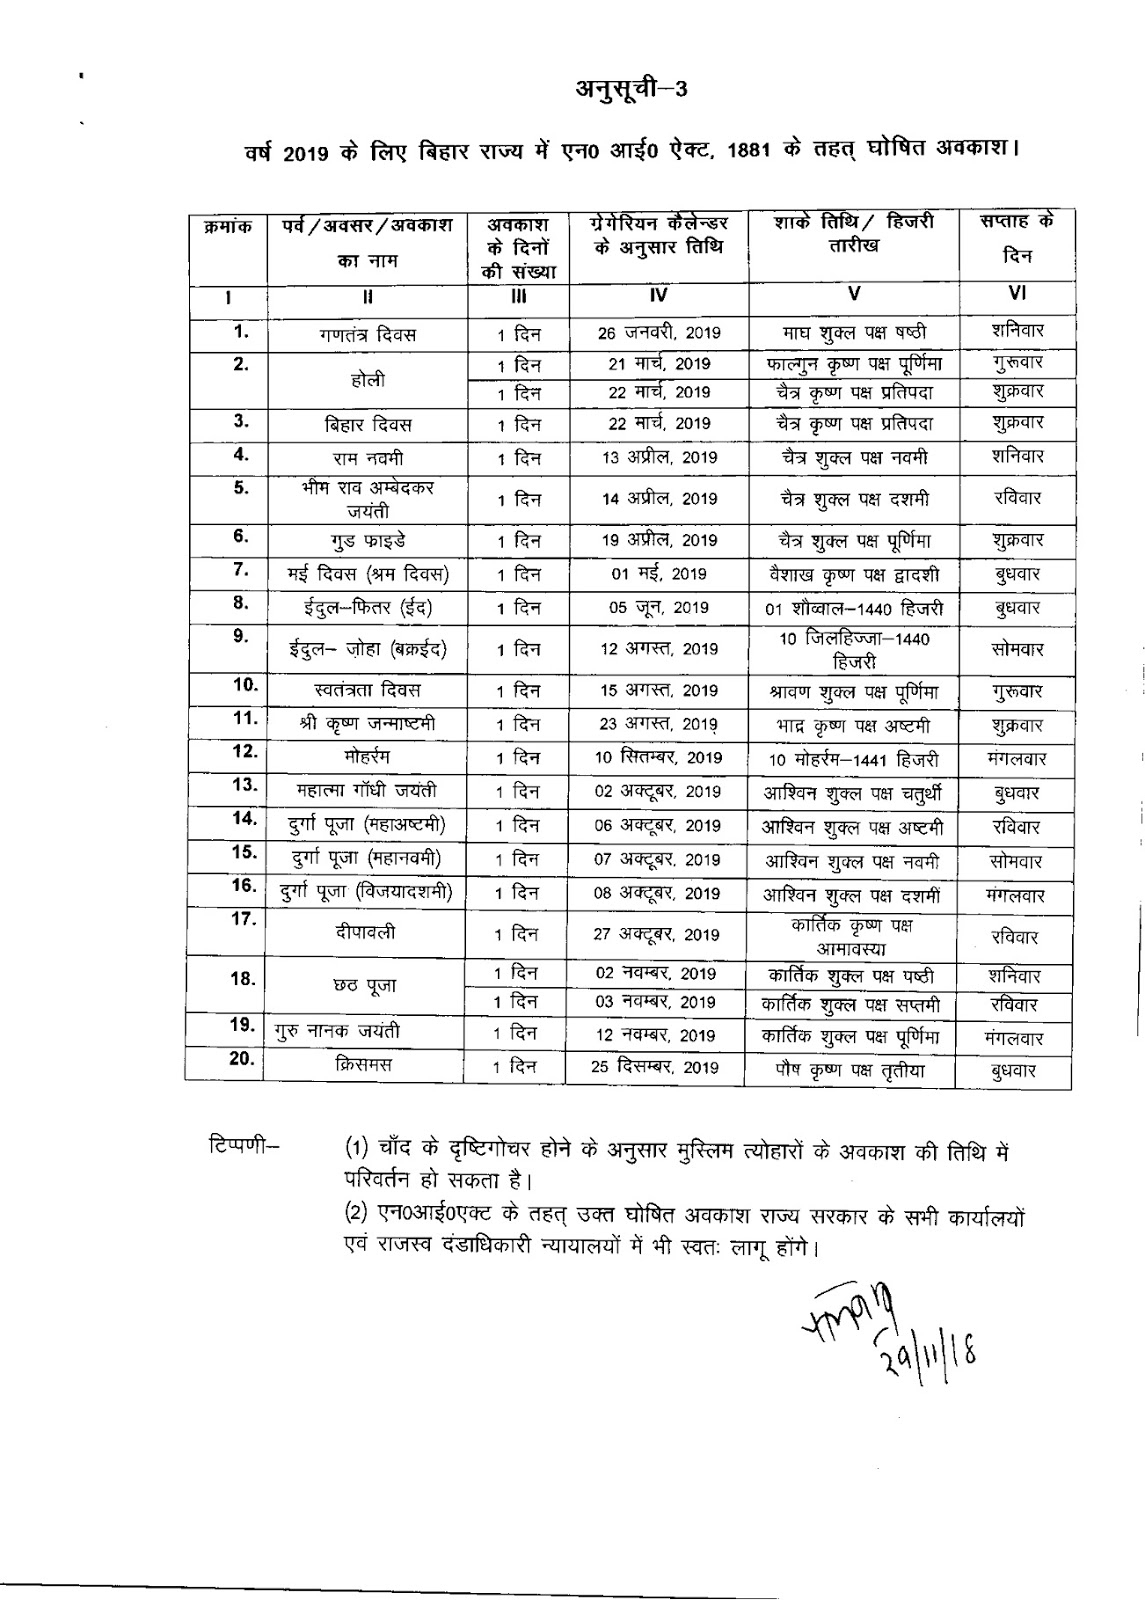 Bihar Government Calendar 2019 #educratsweb intended for Bihar Sarkar Calendra 2020